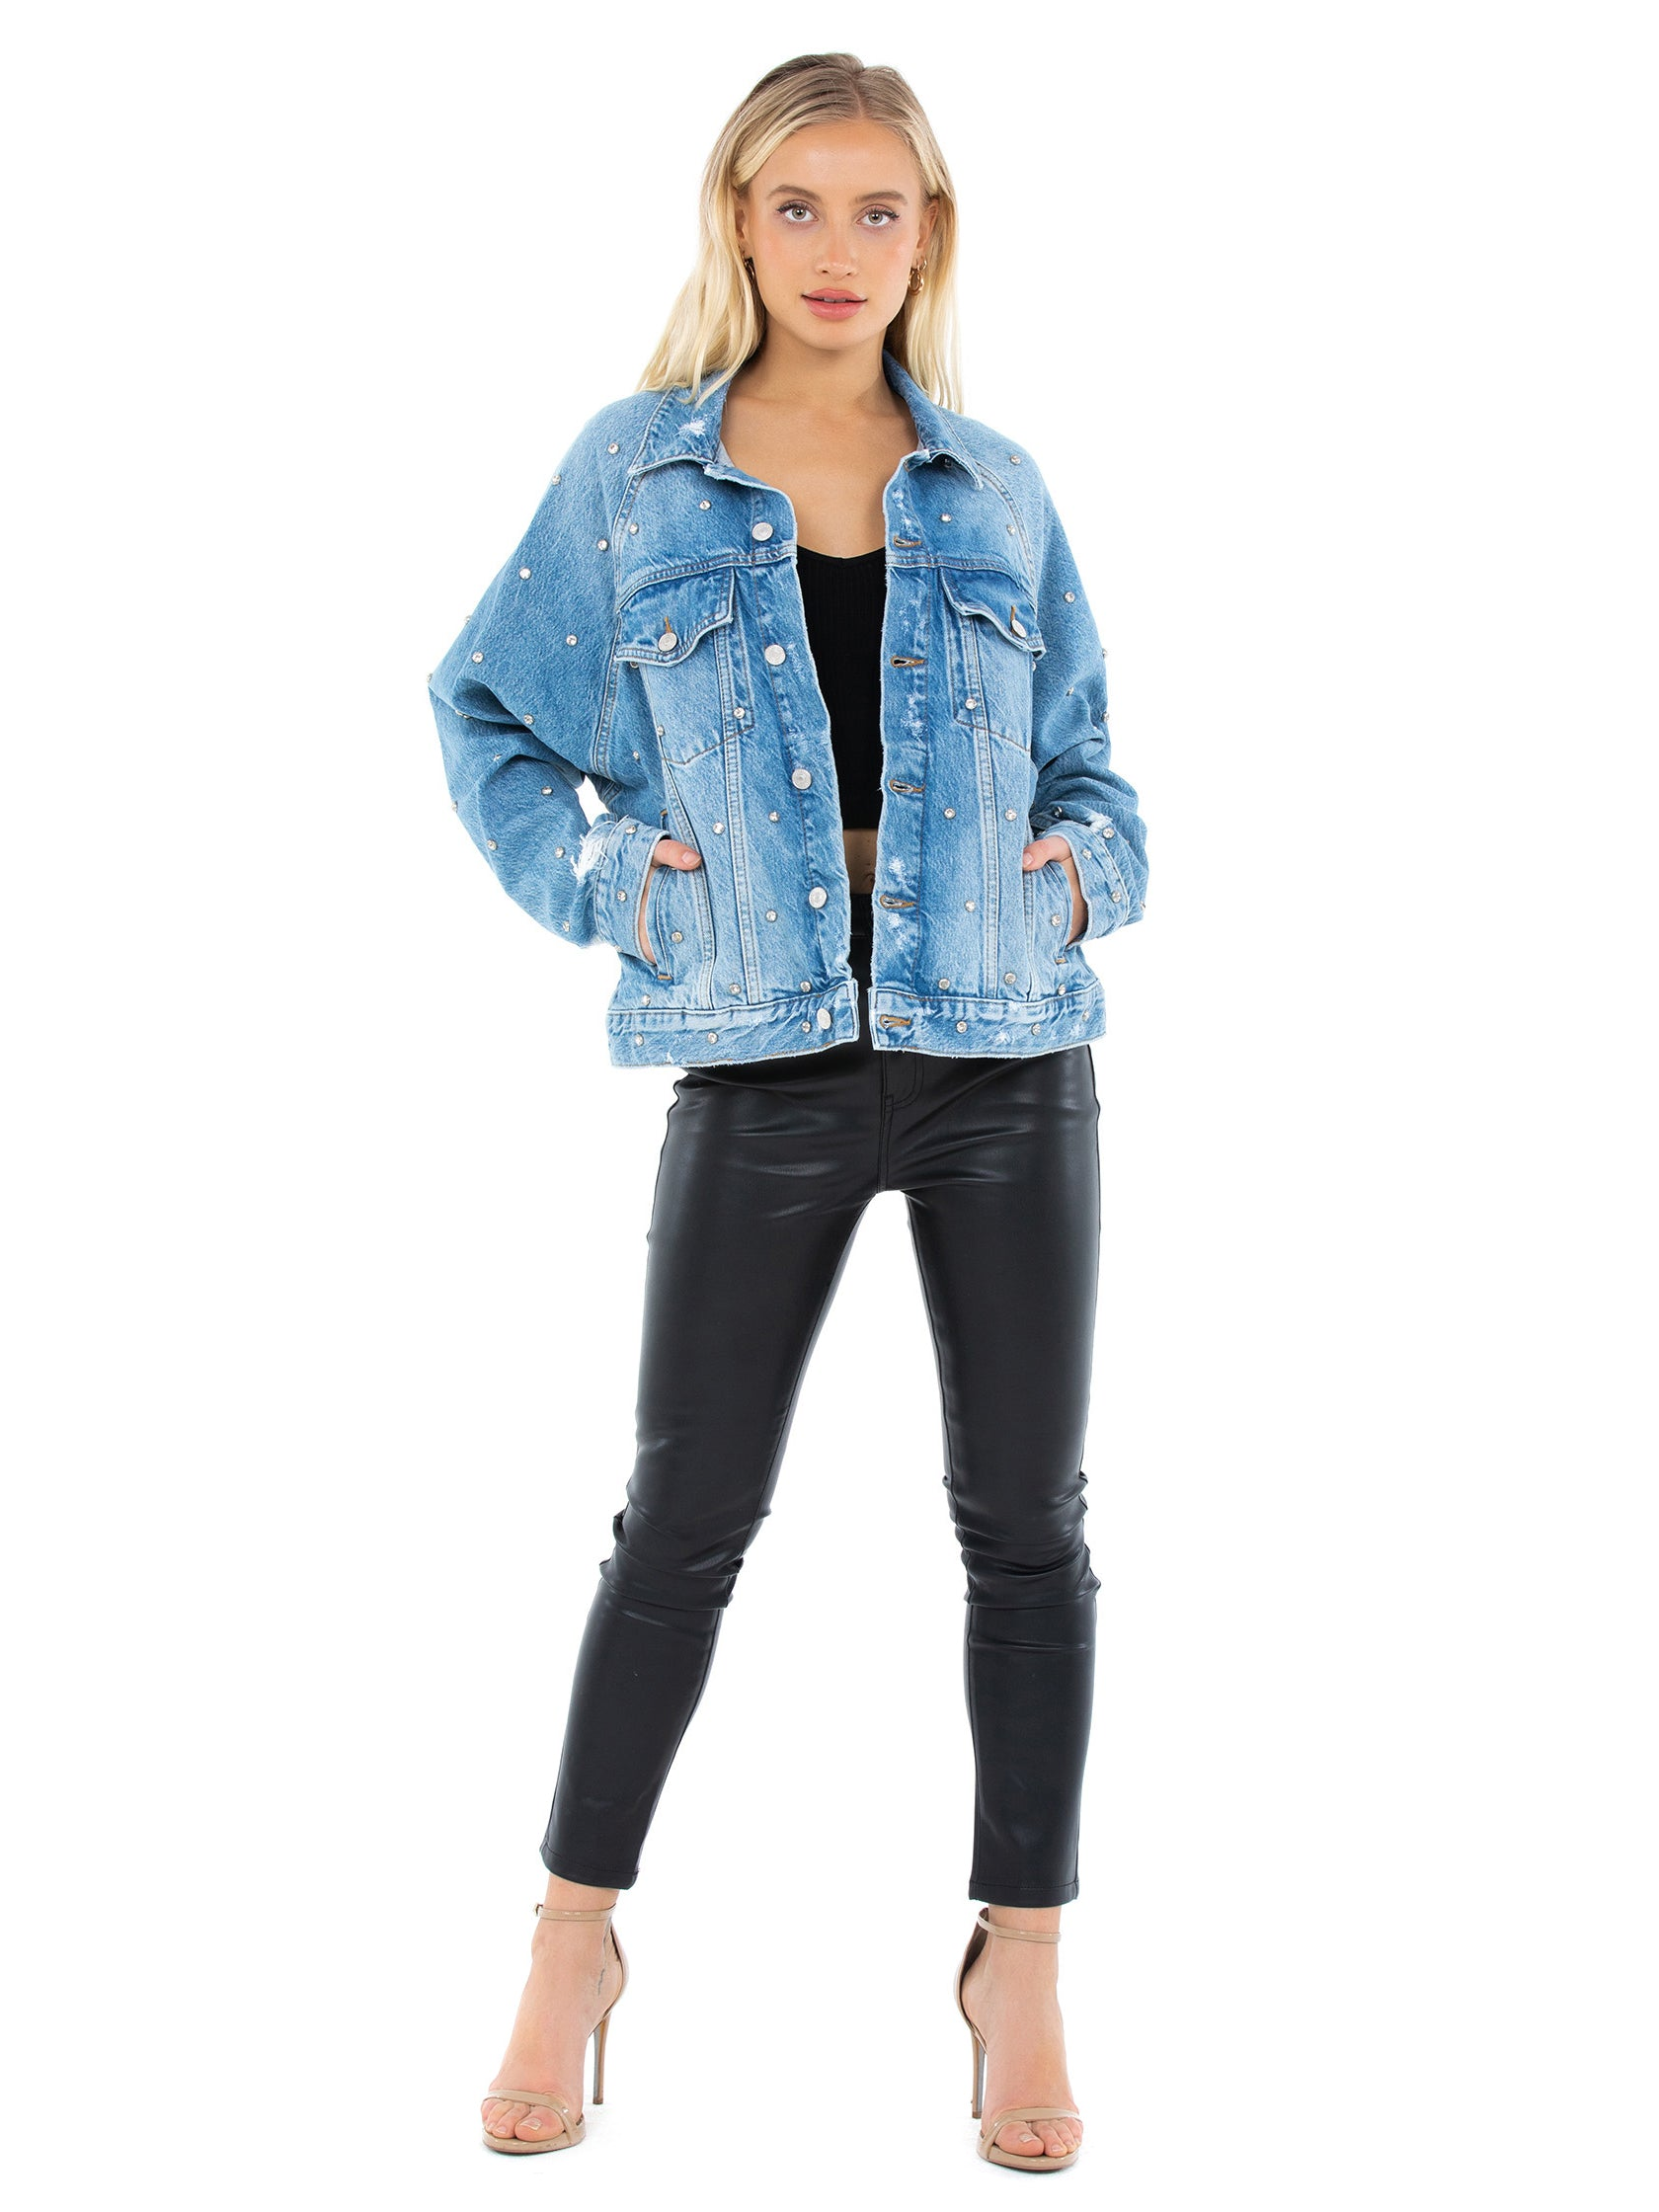 Girl wearing a jacket rental from Free People called Night After Night Denim Jacket